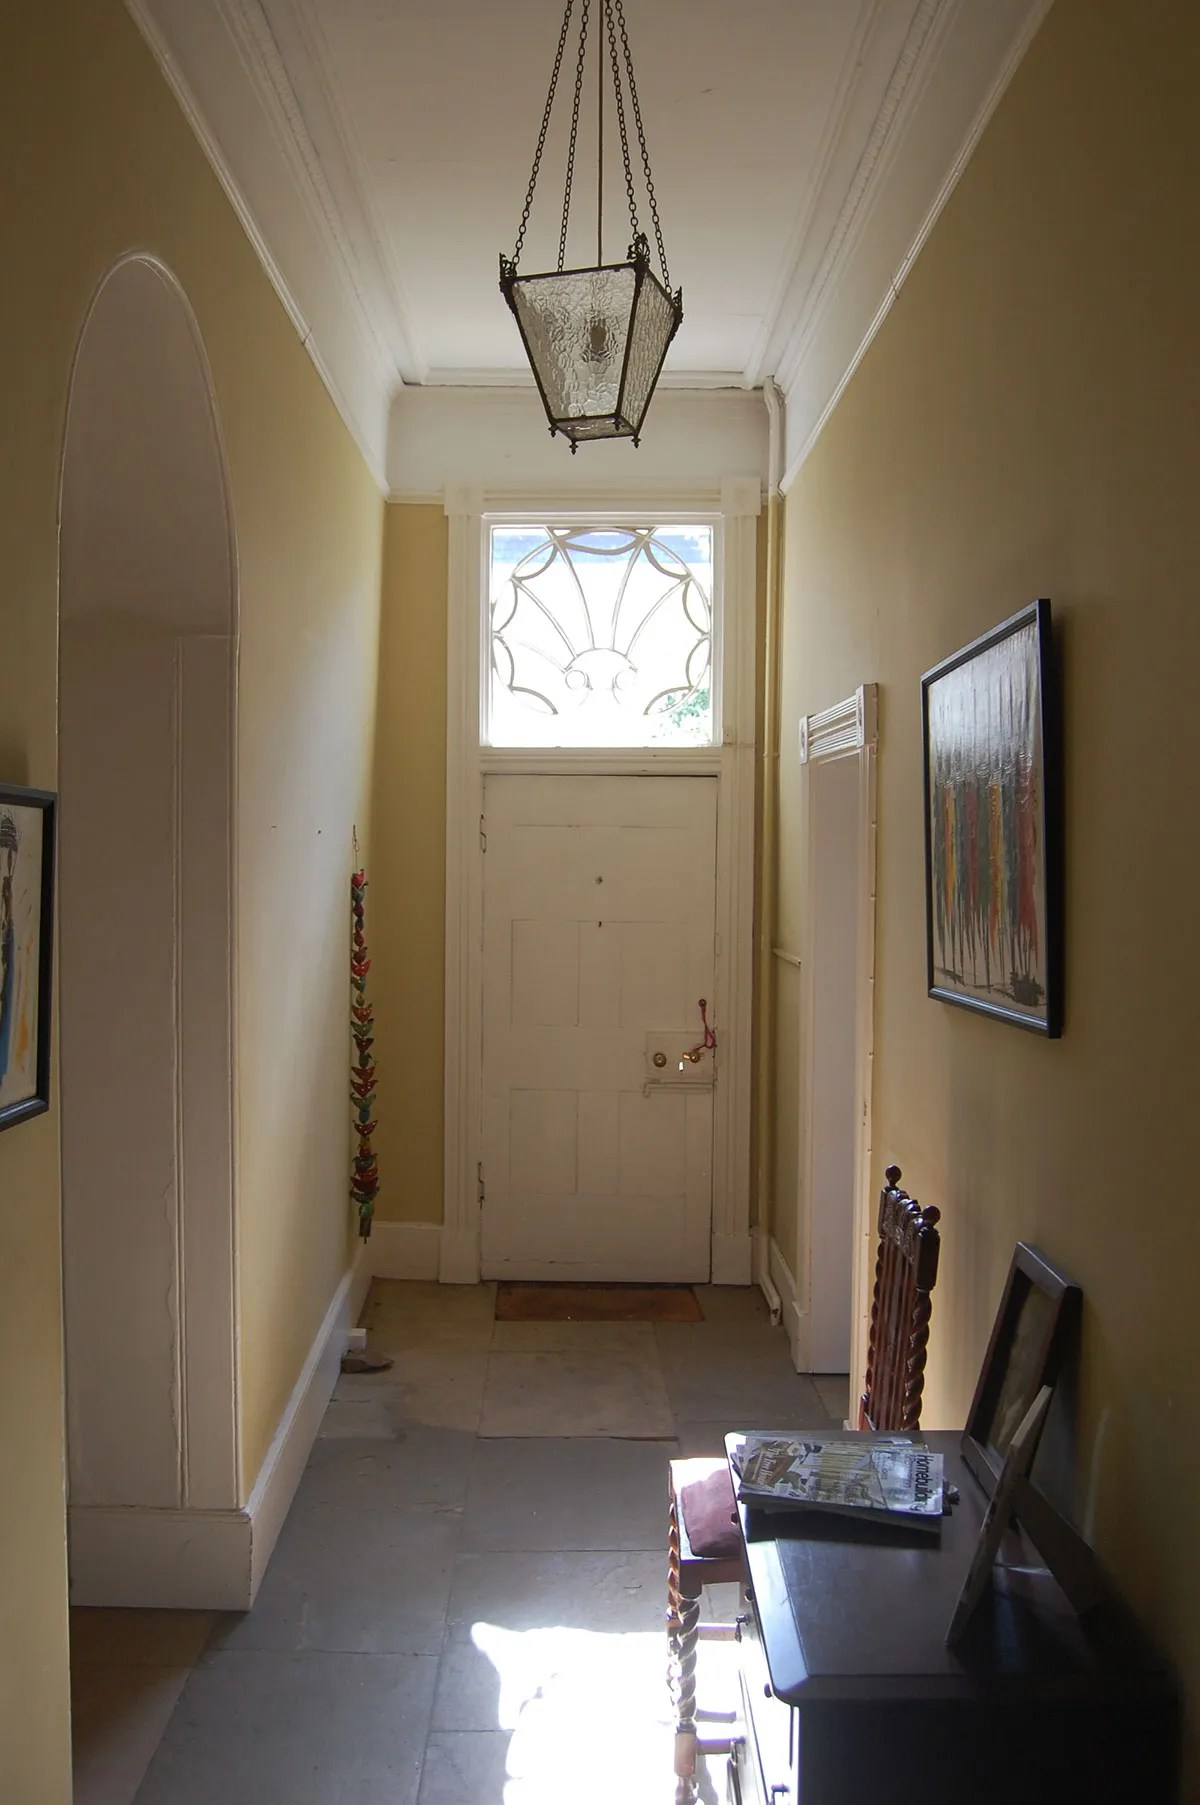 Laura Bingham and Ed Stafford's entrance hall with glass lantern pendant light at their grade II listed house in Hallaton, Leicestershire